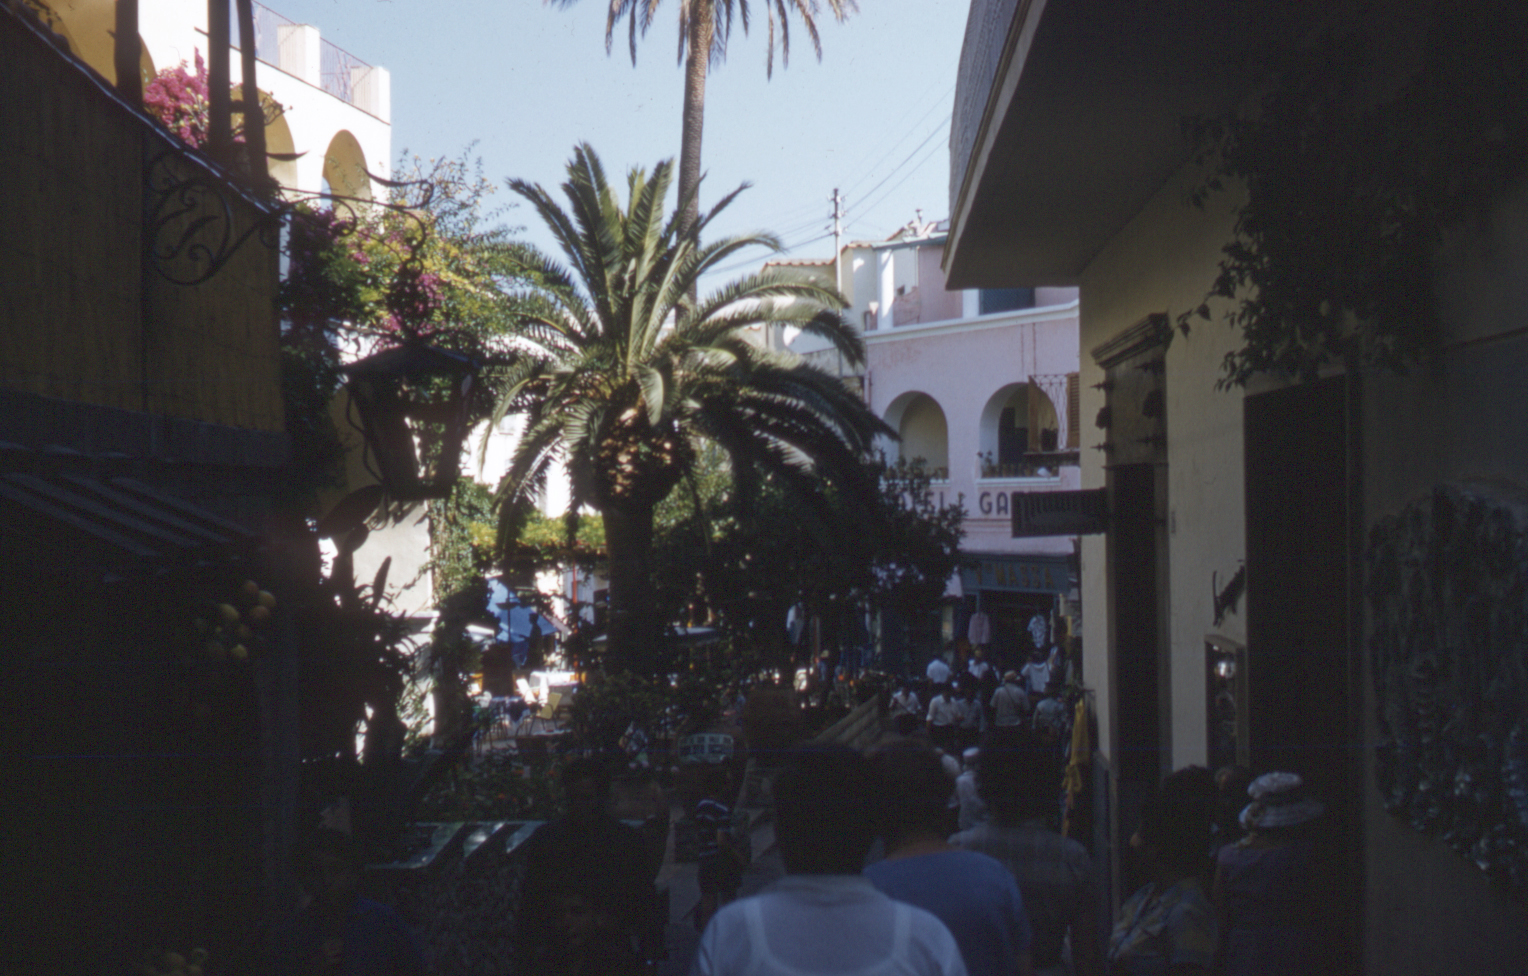 098-aug61-cannesnice-capri